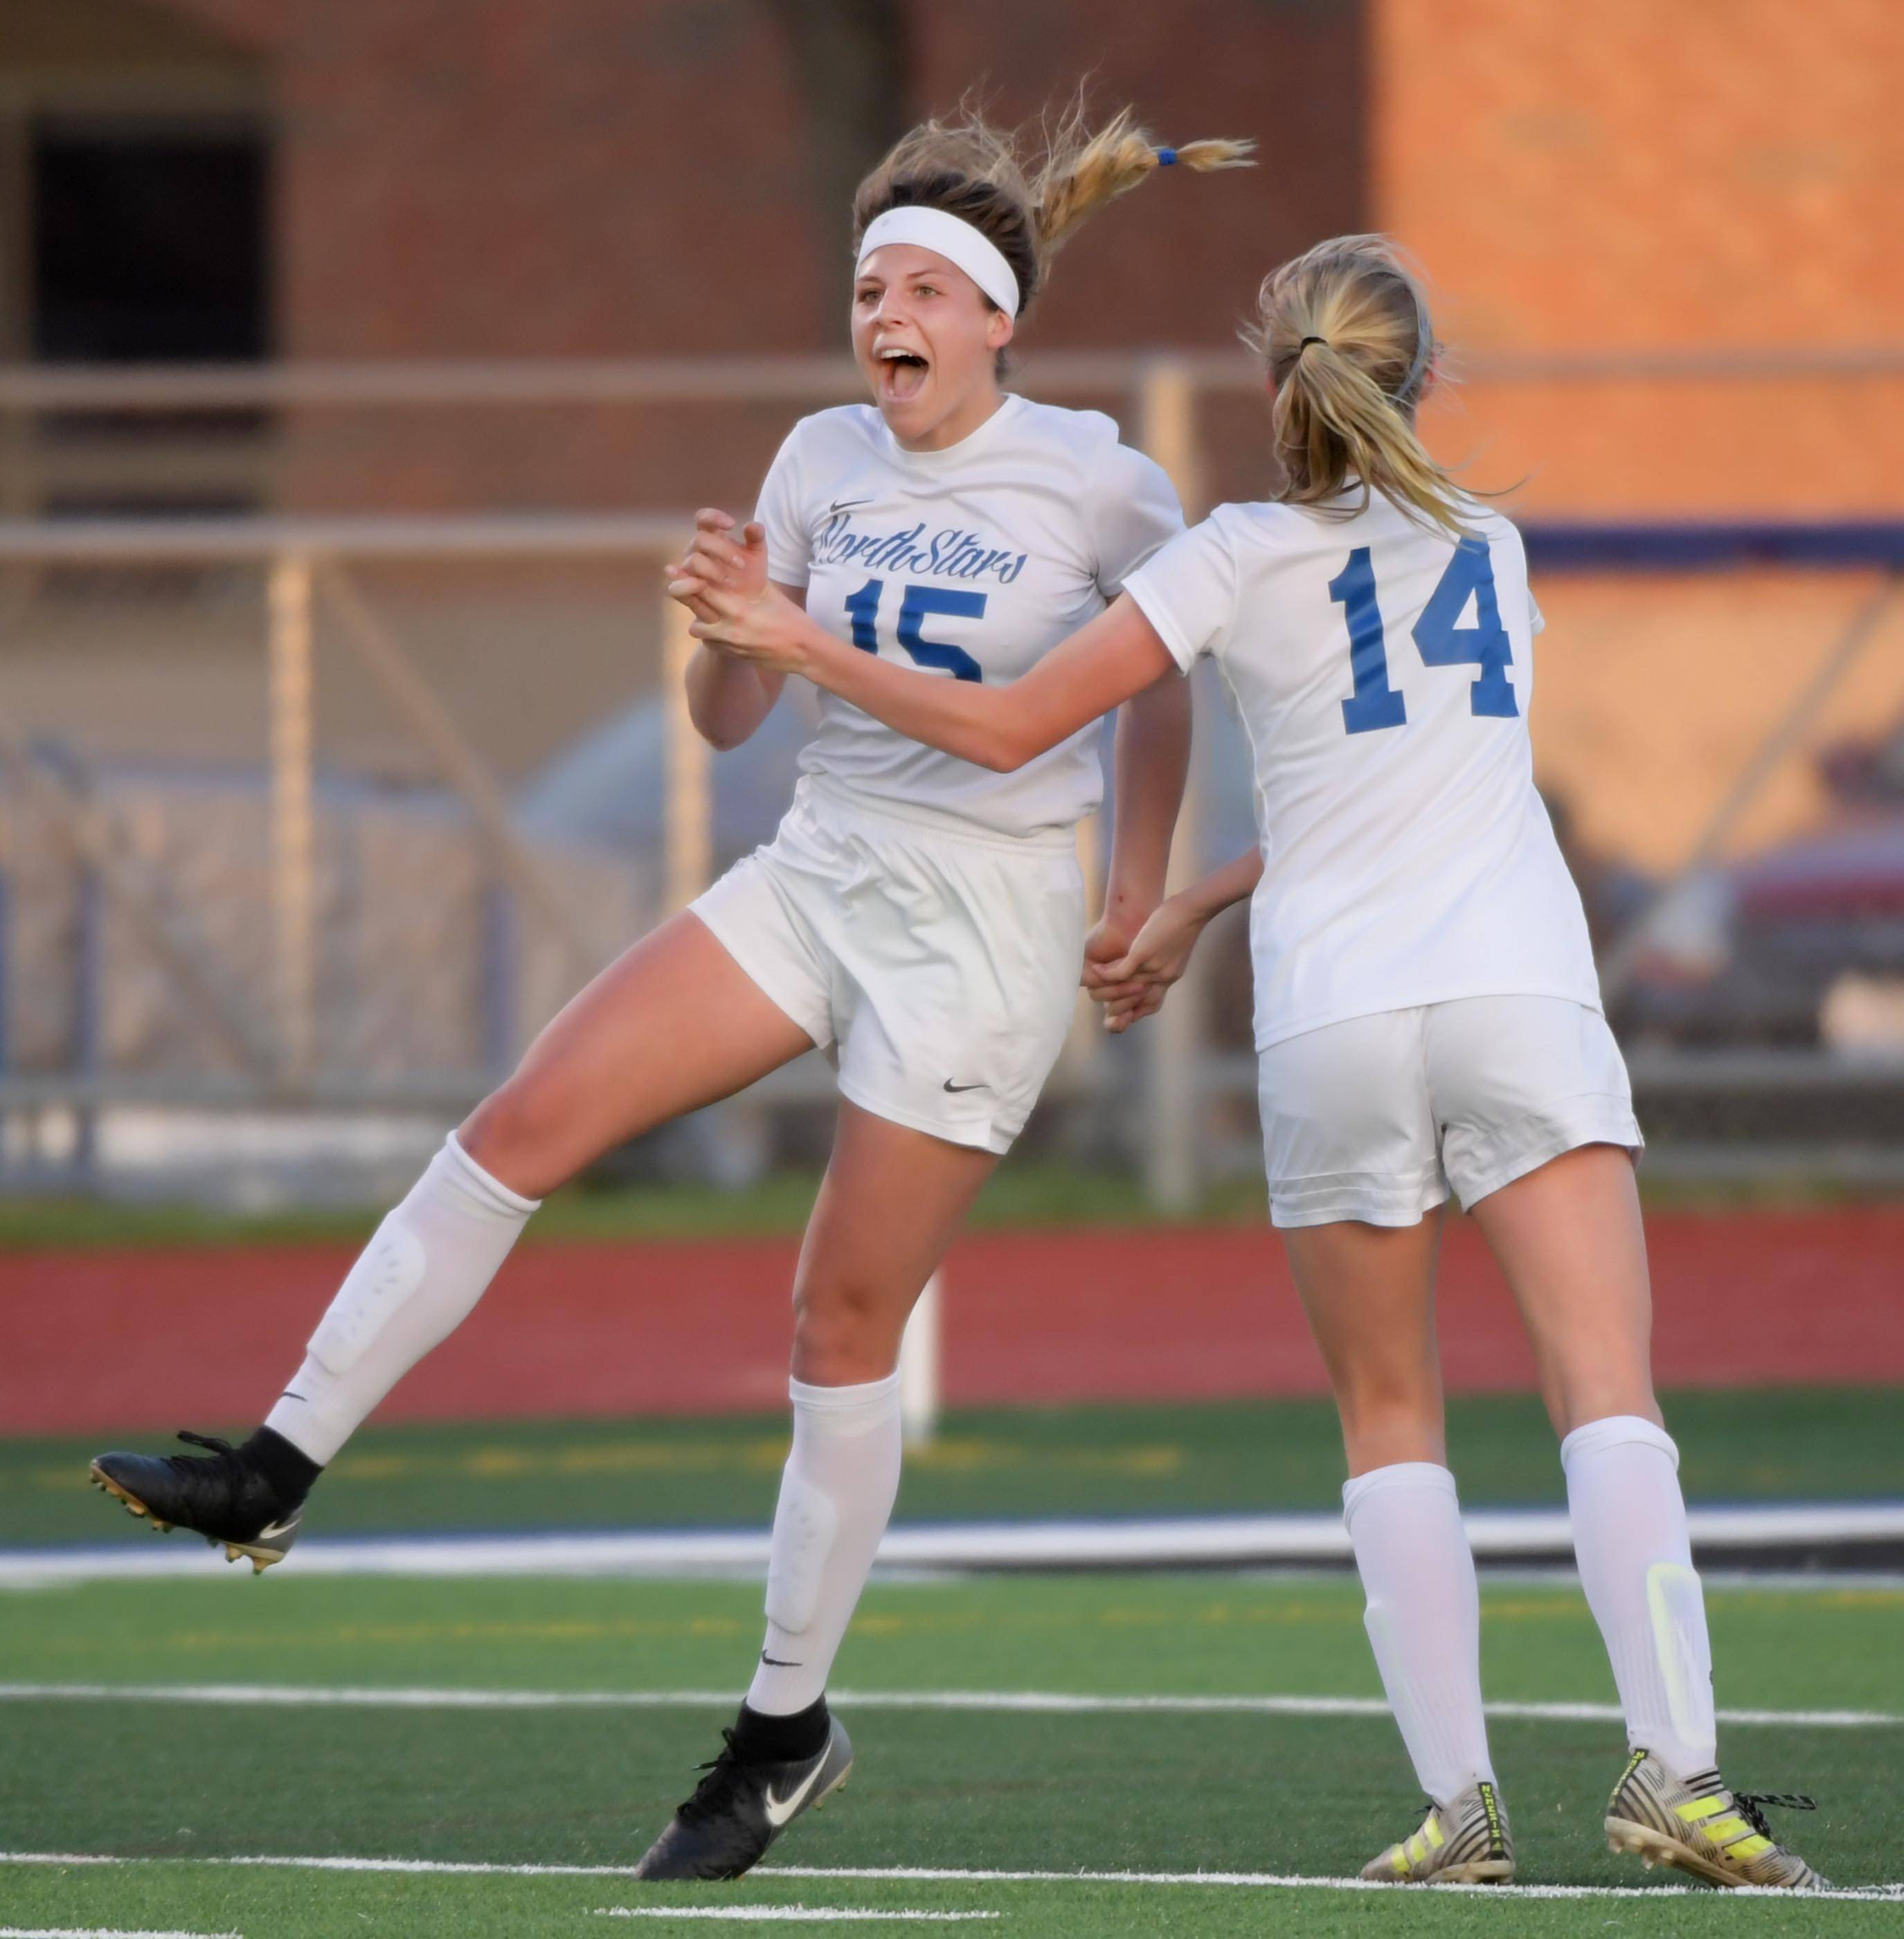 St. Charles North's Gia Wahlberg celebrates her second goal against St. Charles East with teammate Chloe Netzel in a girls soccer game at North High School Tuesday.